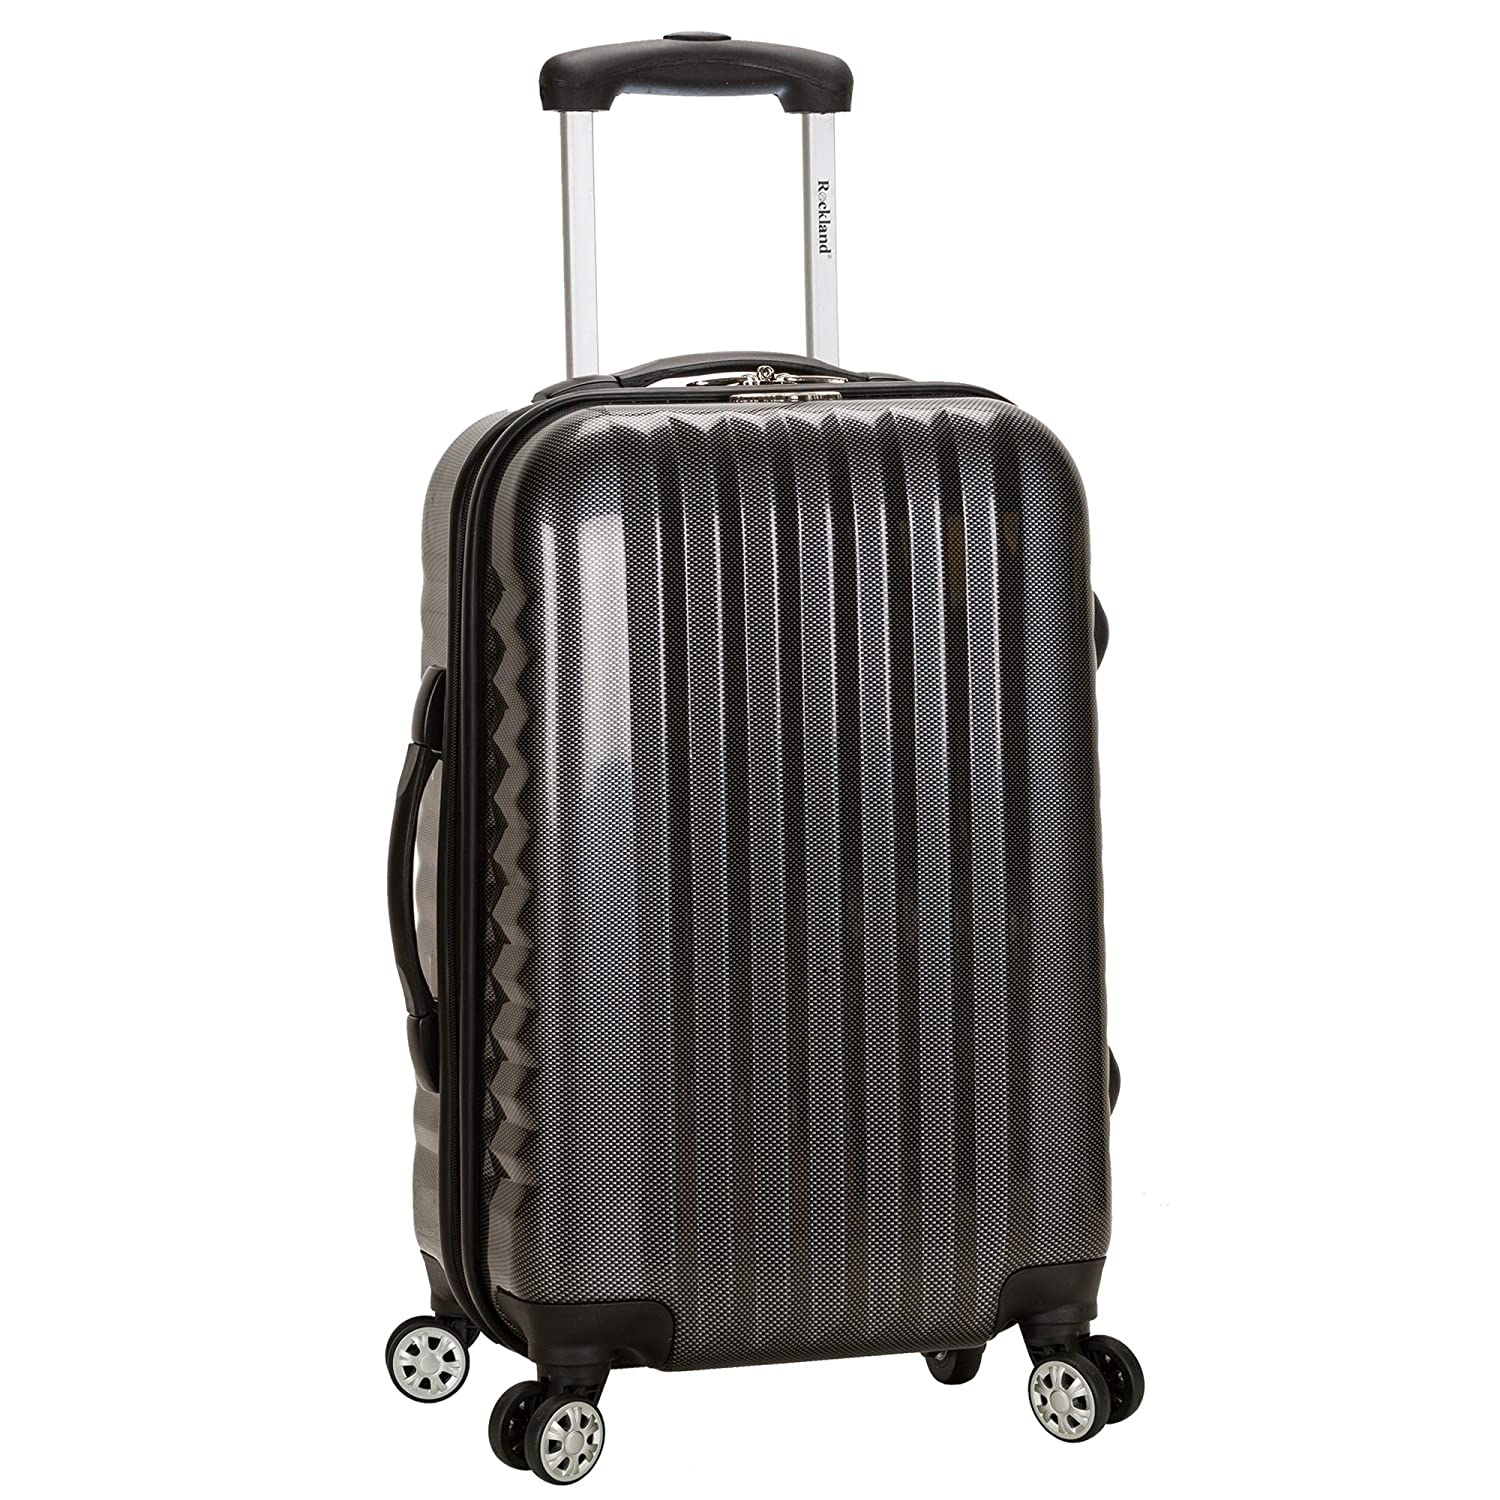 Rockland Luggage Melbourne 20 Inch Expandable Carry On, Carbon, One Size